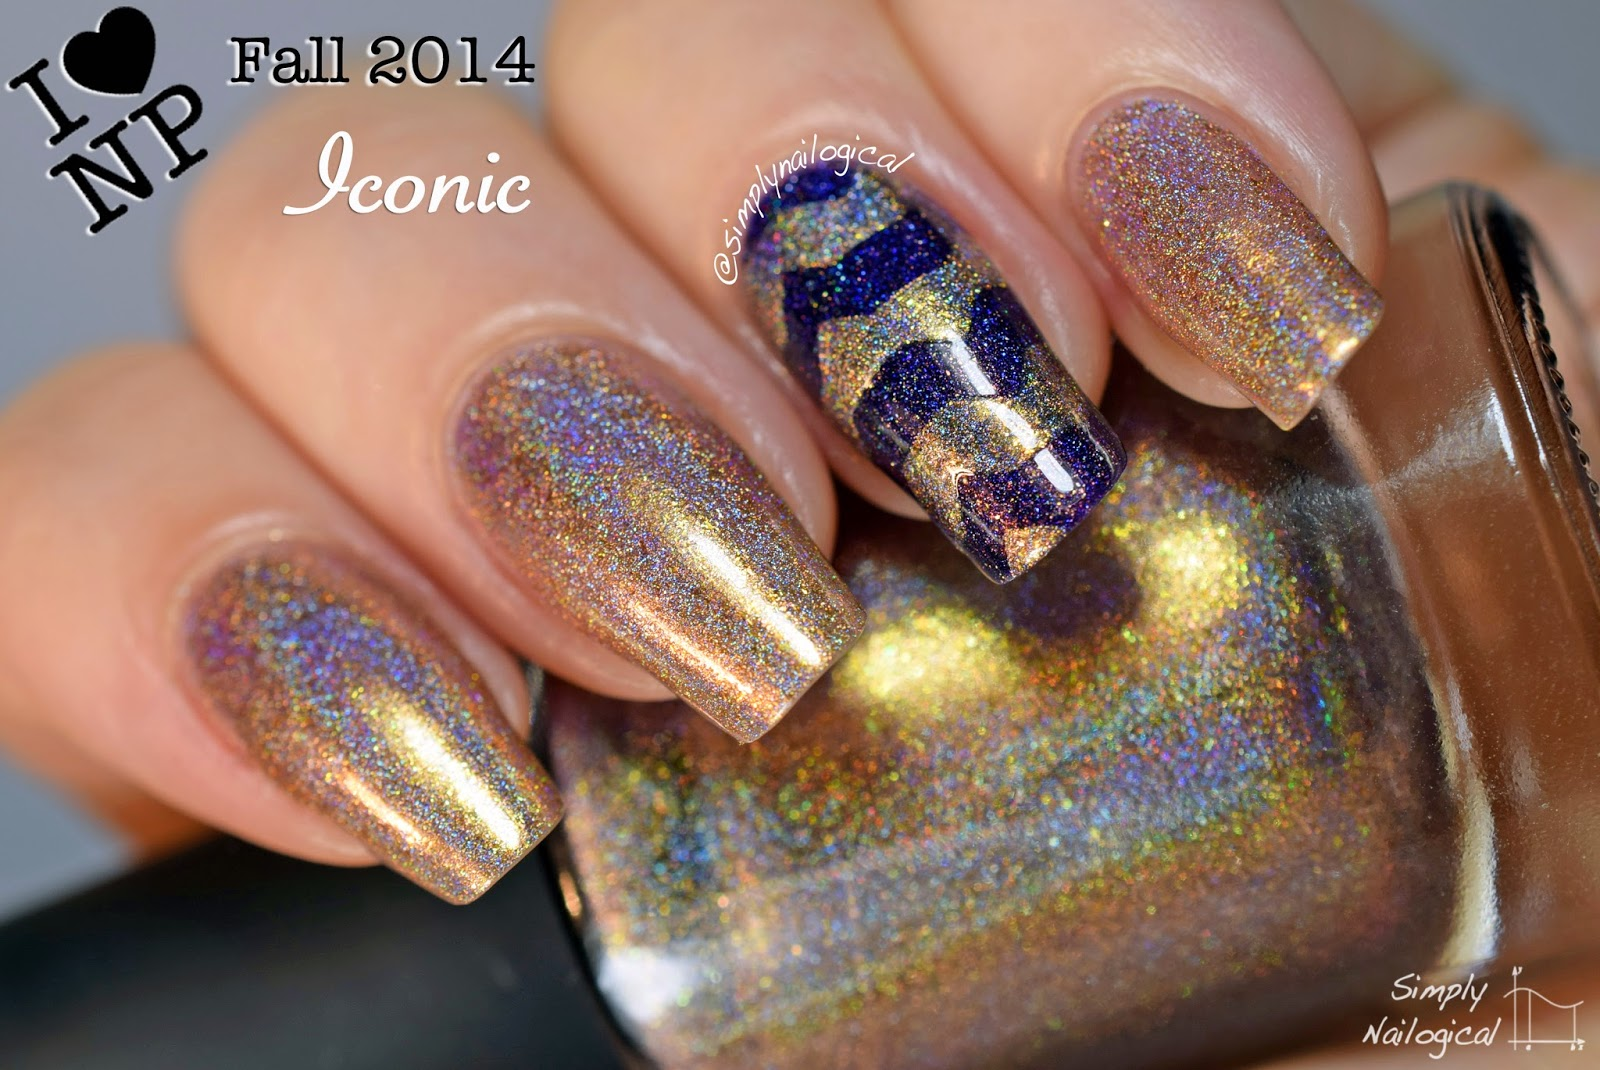 Iconic - ILNP Fall 2014 collection swatch